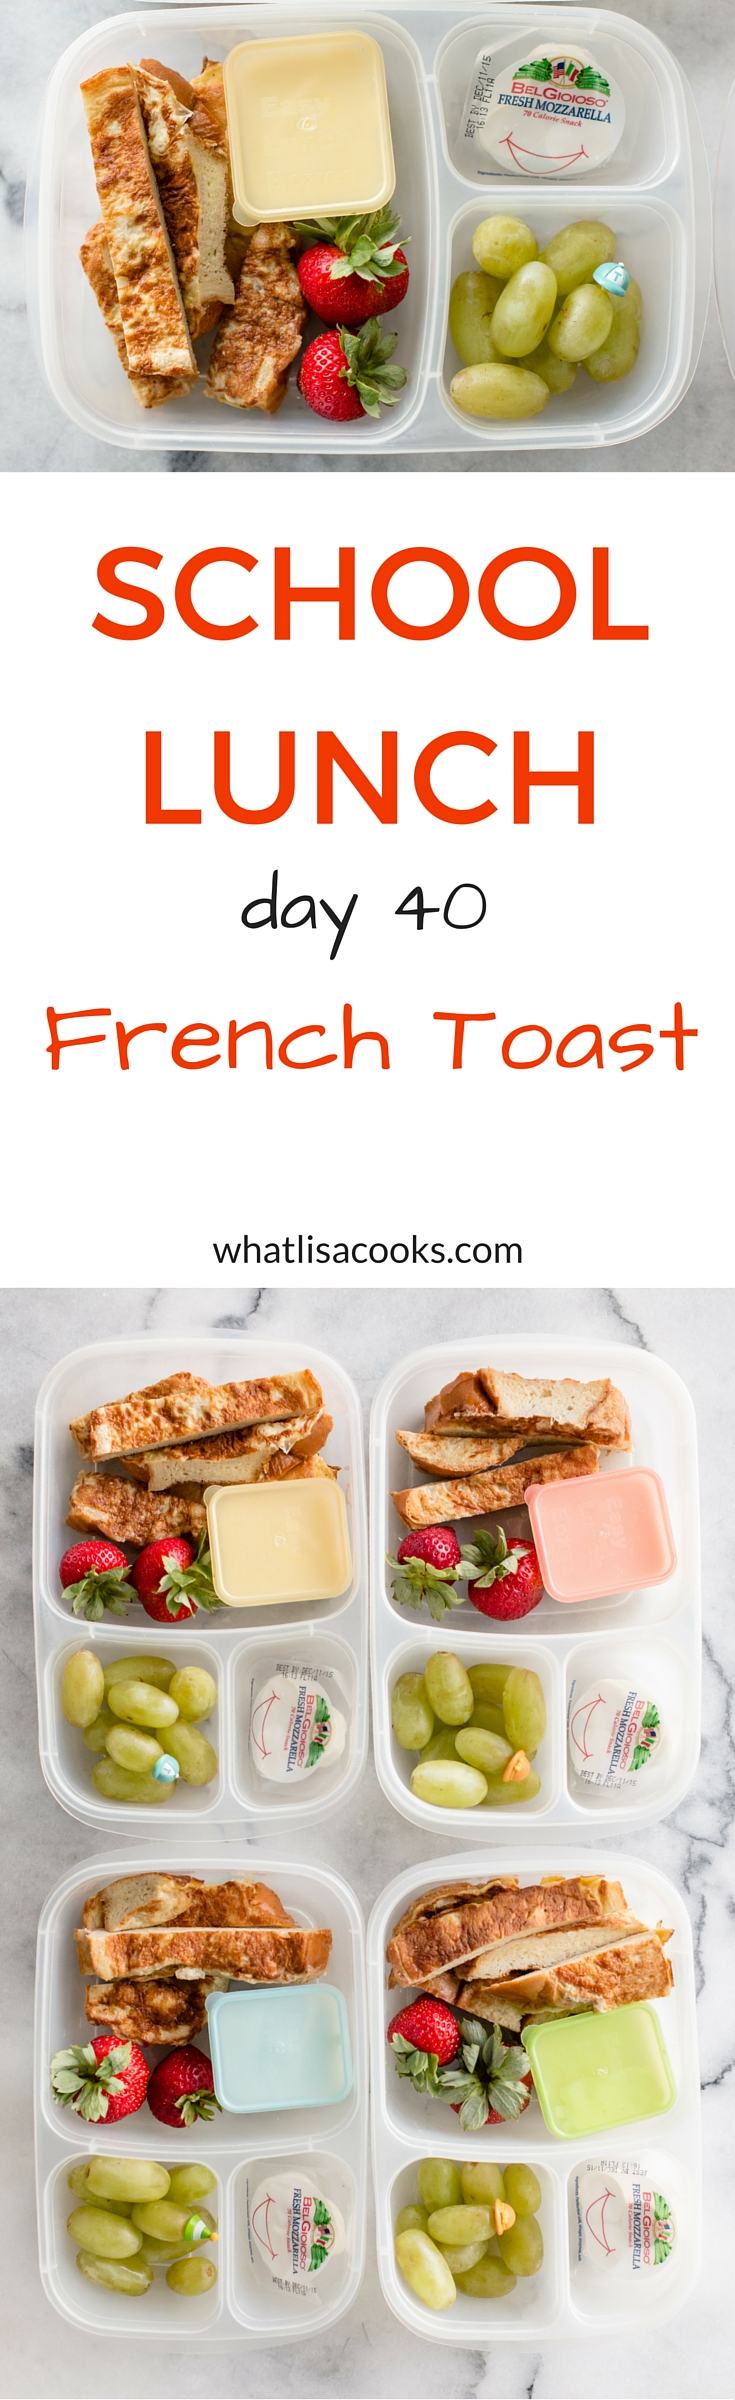 Give Them Breakfast For School Lunch! An Easy School Lunch Of French Toast  Sticks From